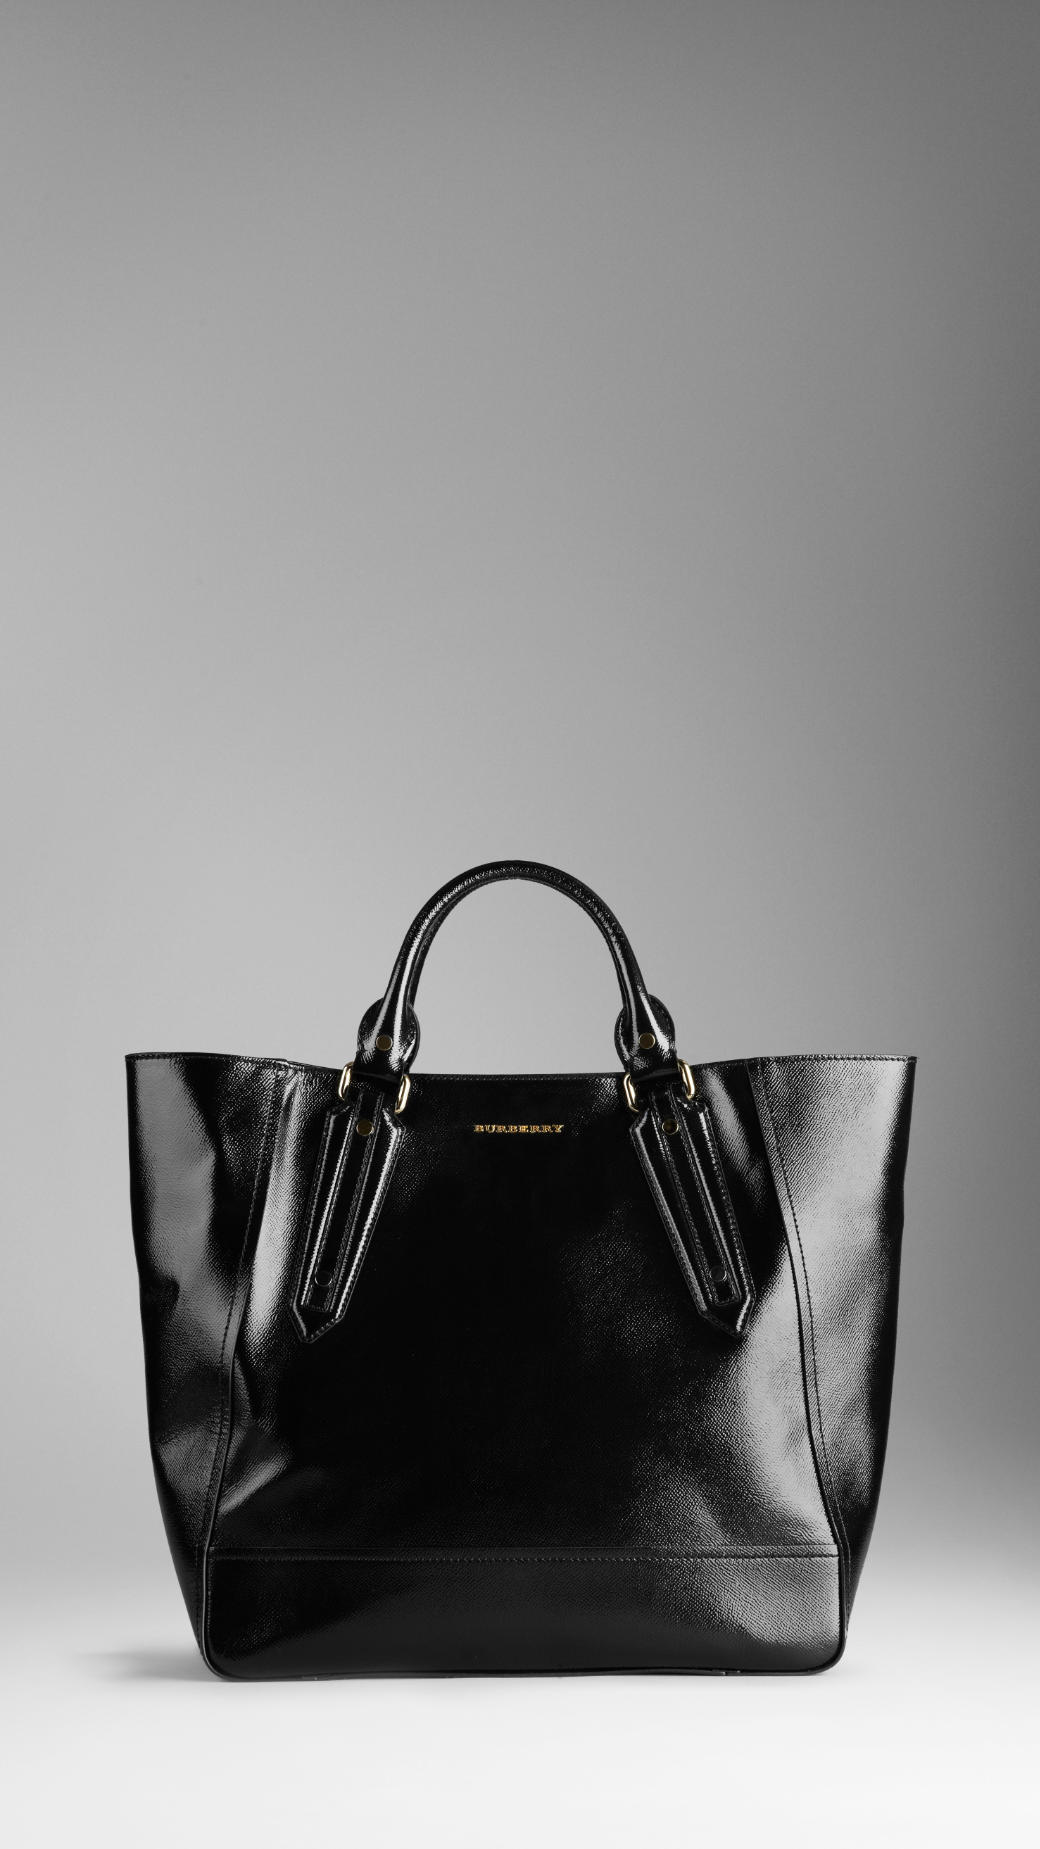 Lyst - Burberry Large Patent London Leather Portrait Tote Bag in Black ef42fa51310d4